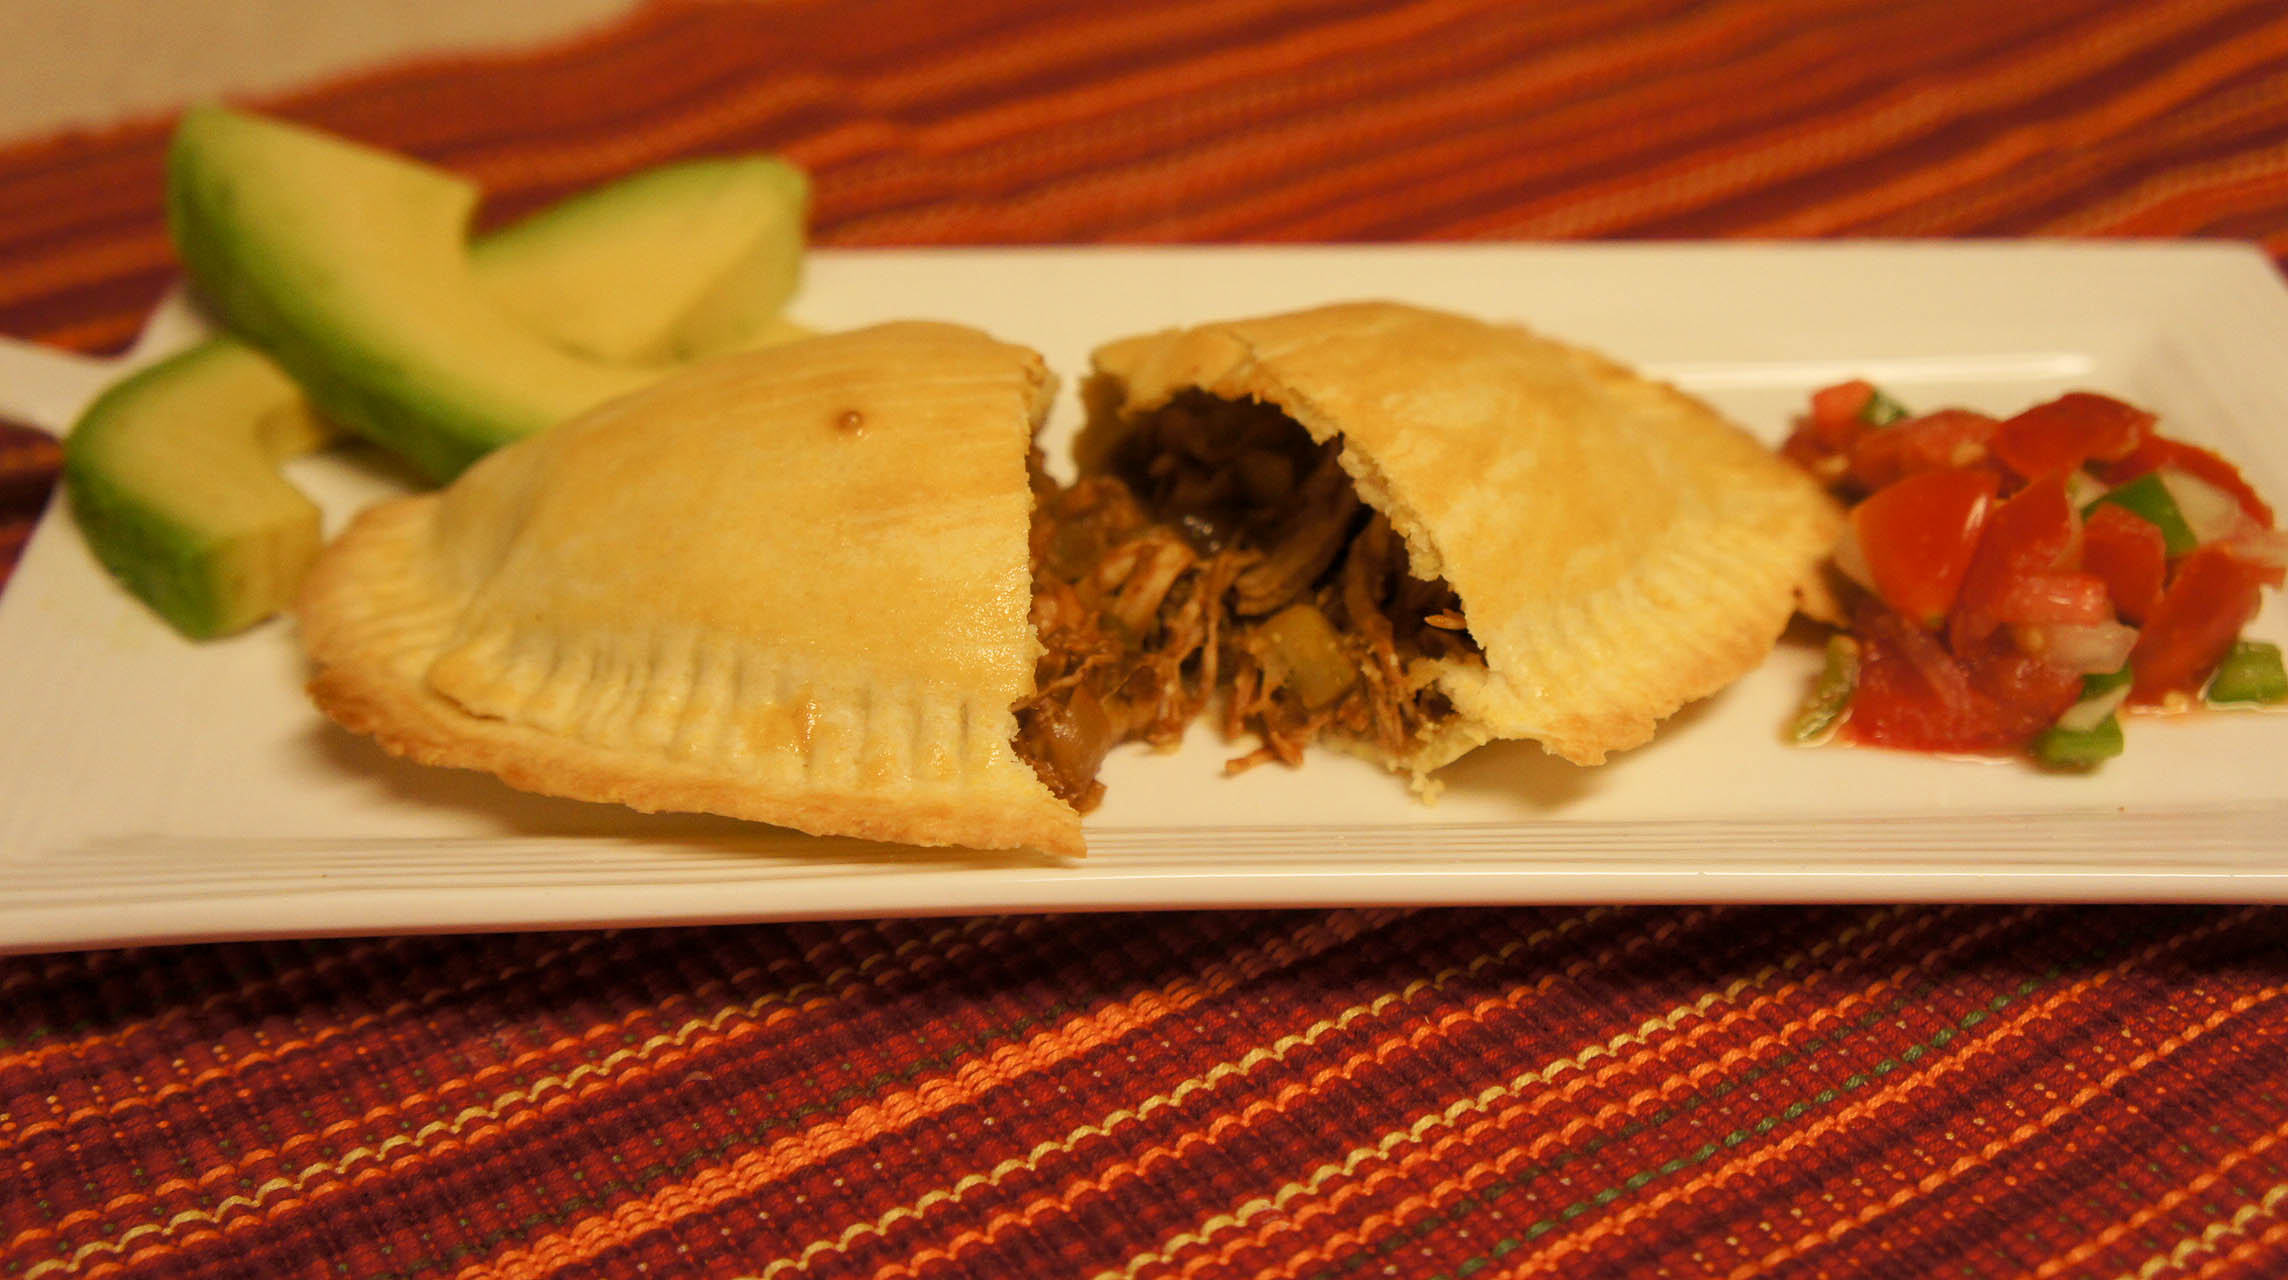 Chicken Mole Empanadas - Just Short of Crazy